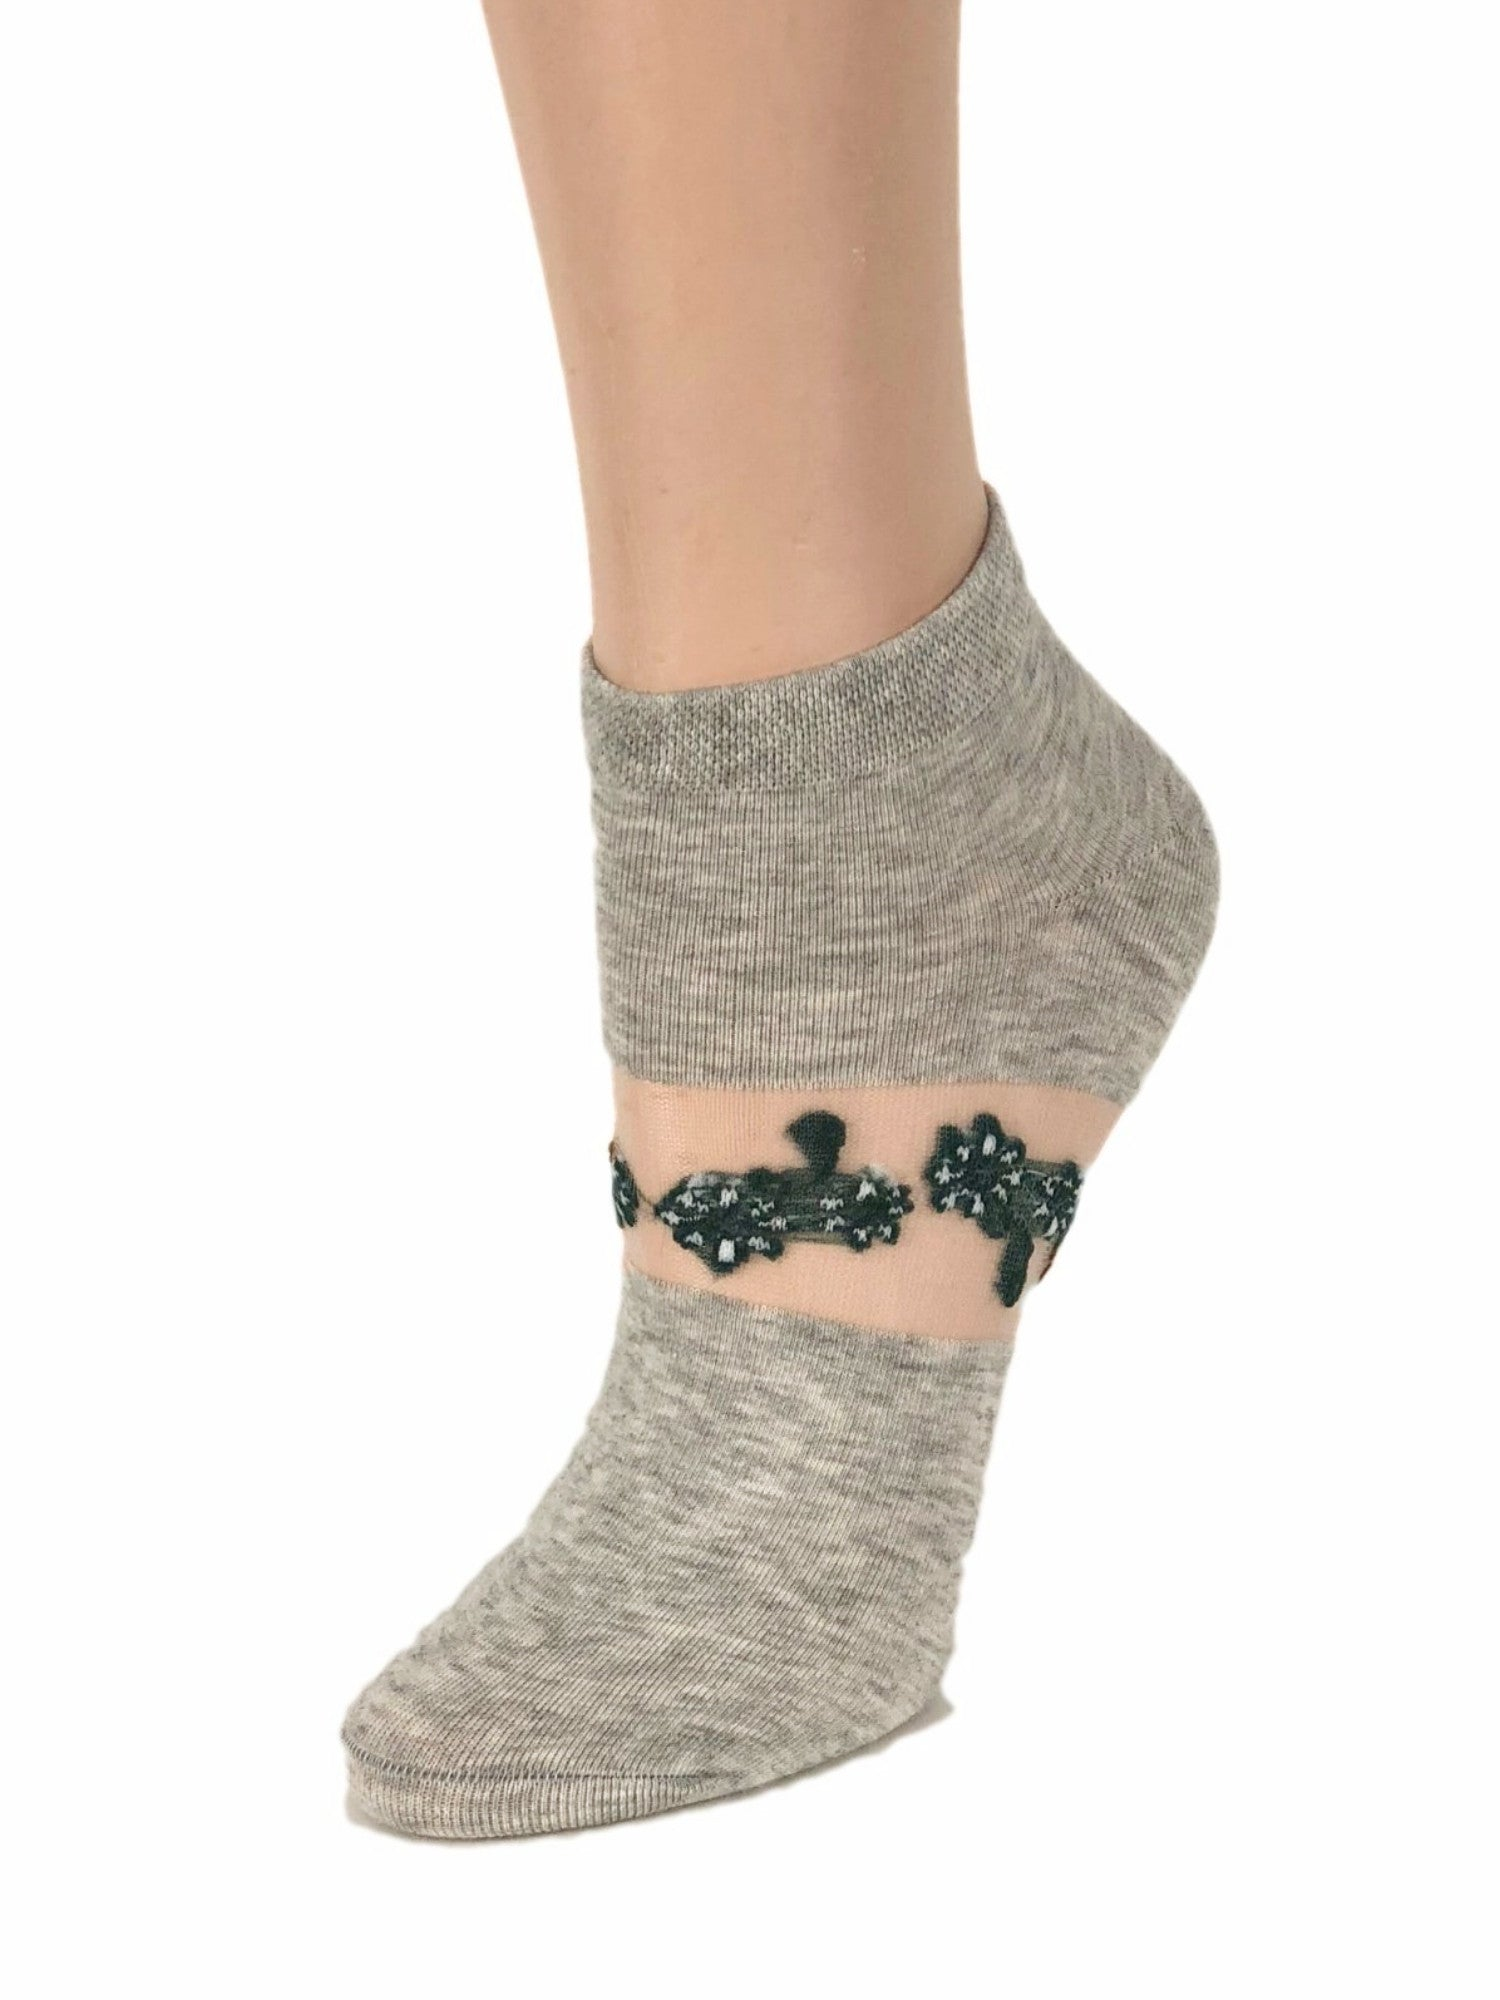 One-Stripped Black Flower Ankle Sheer Socks - Global Trendz Fashion®